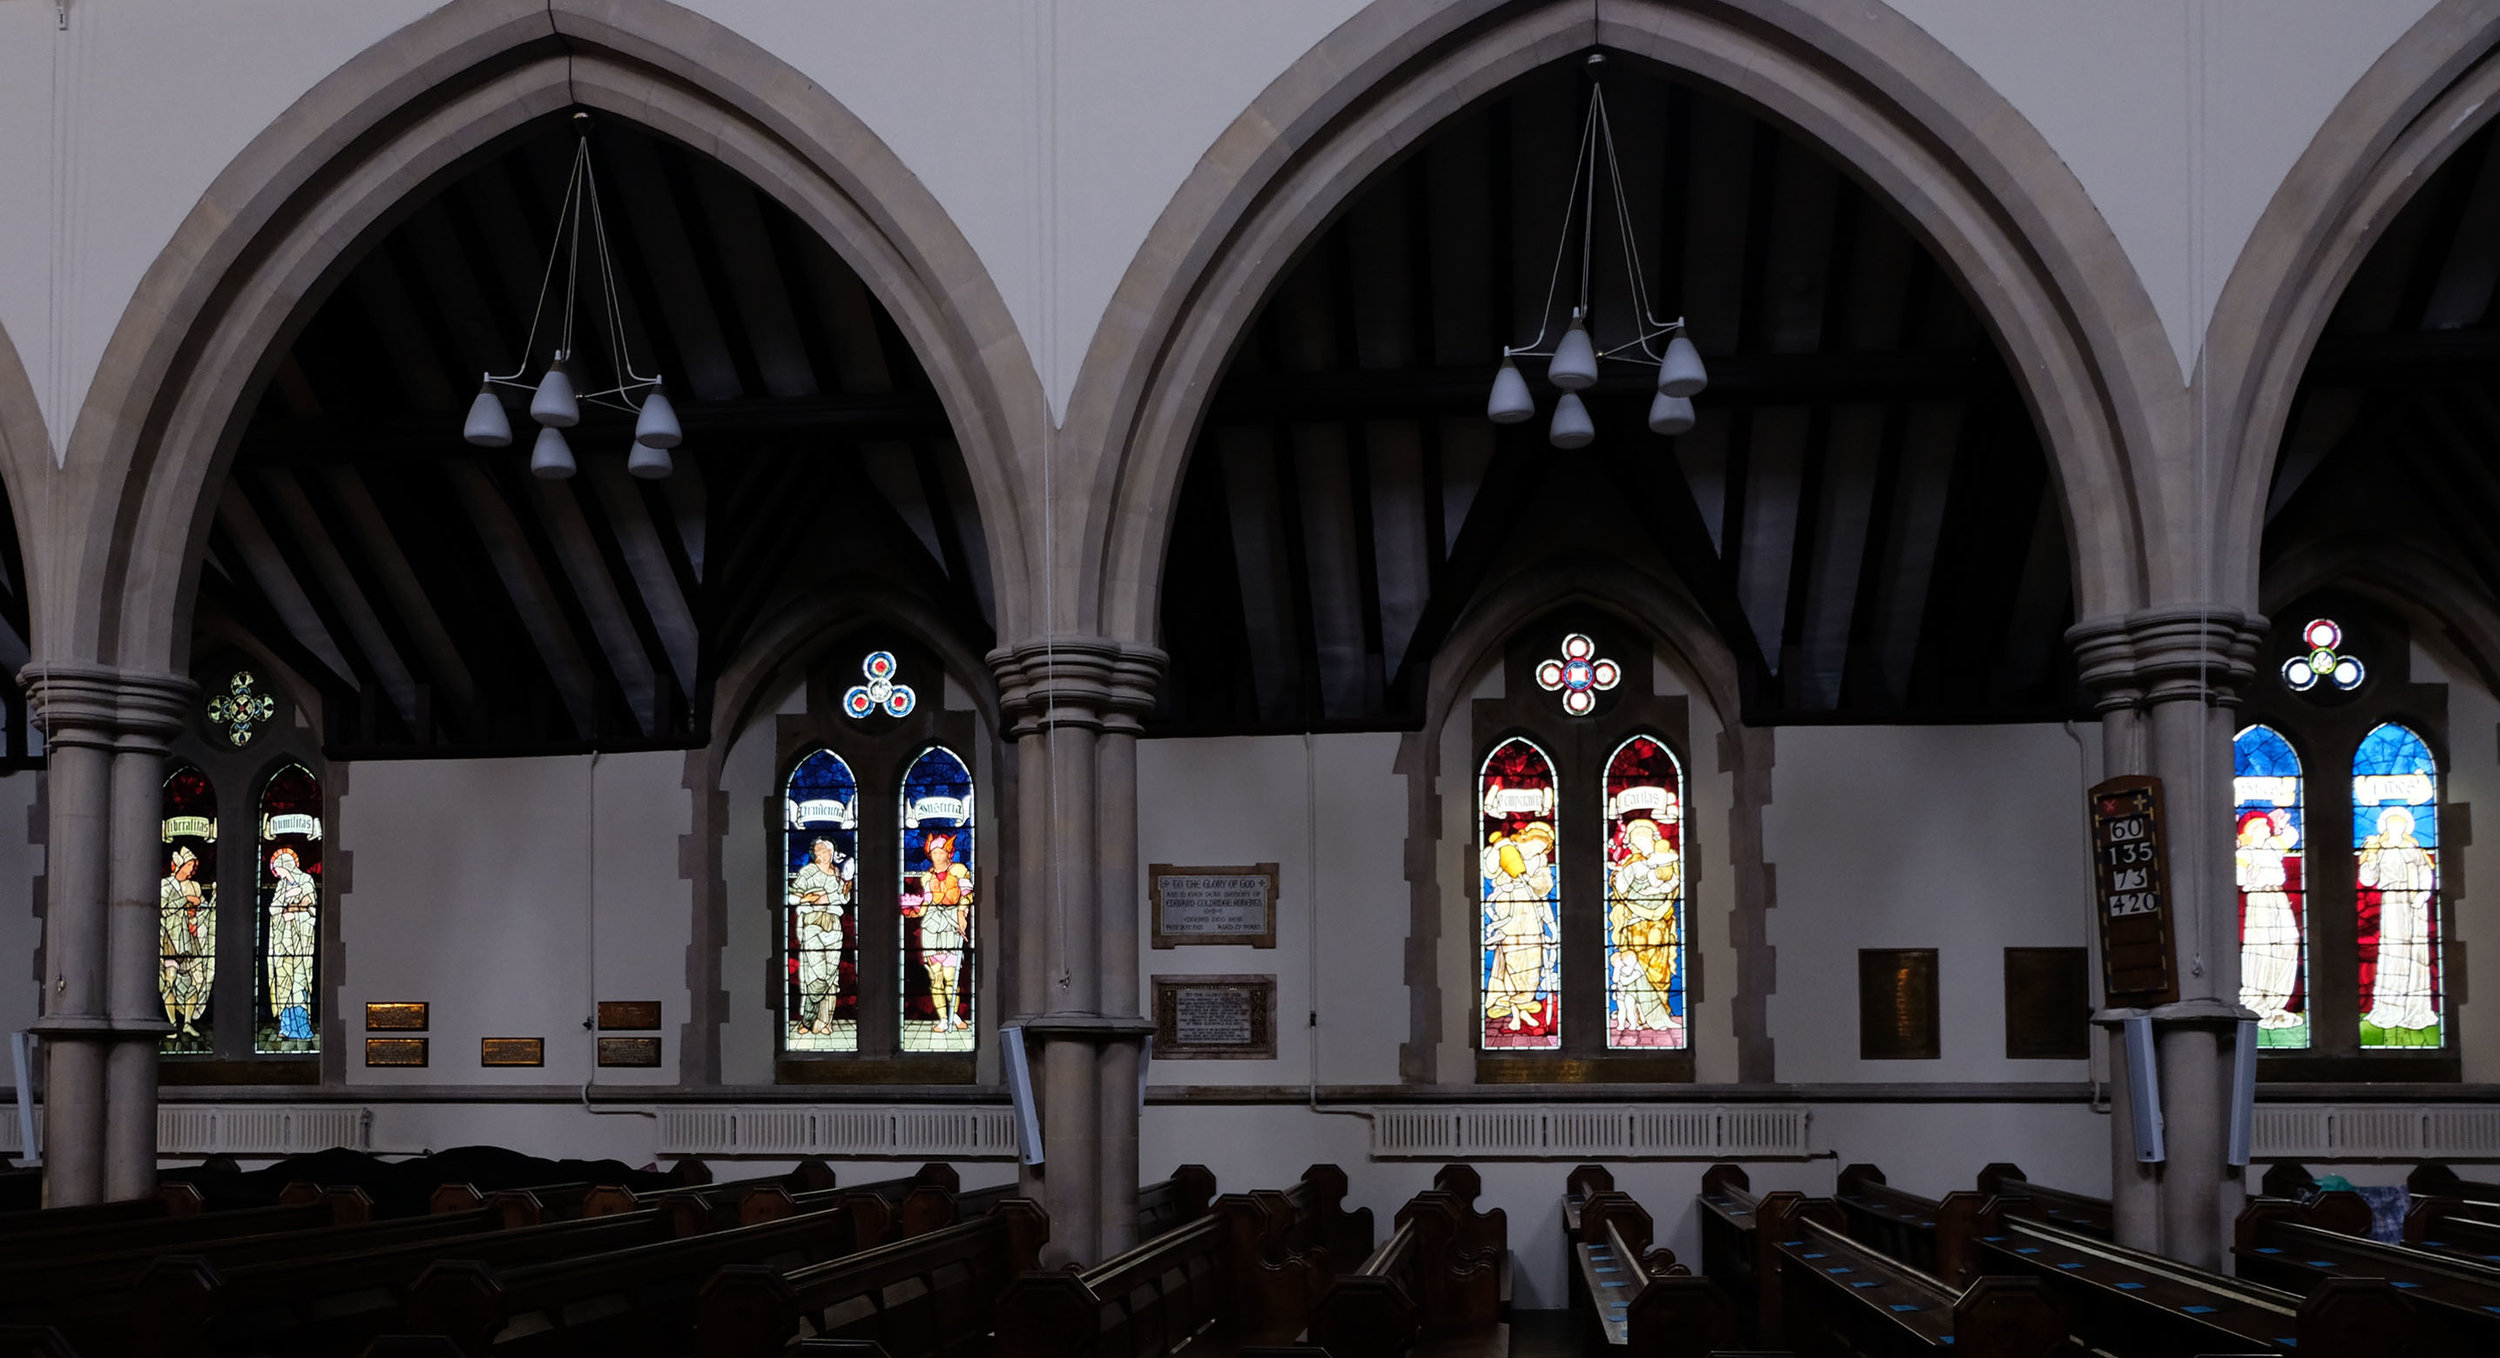 North Aisle, left to right: Liberalitas & Humanitas (1899), Prudentia & Justitia (1885), Temperentia & Caritas (1876), Spes & Fides (1876)